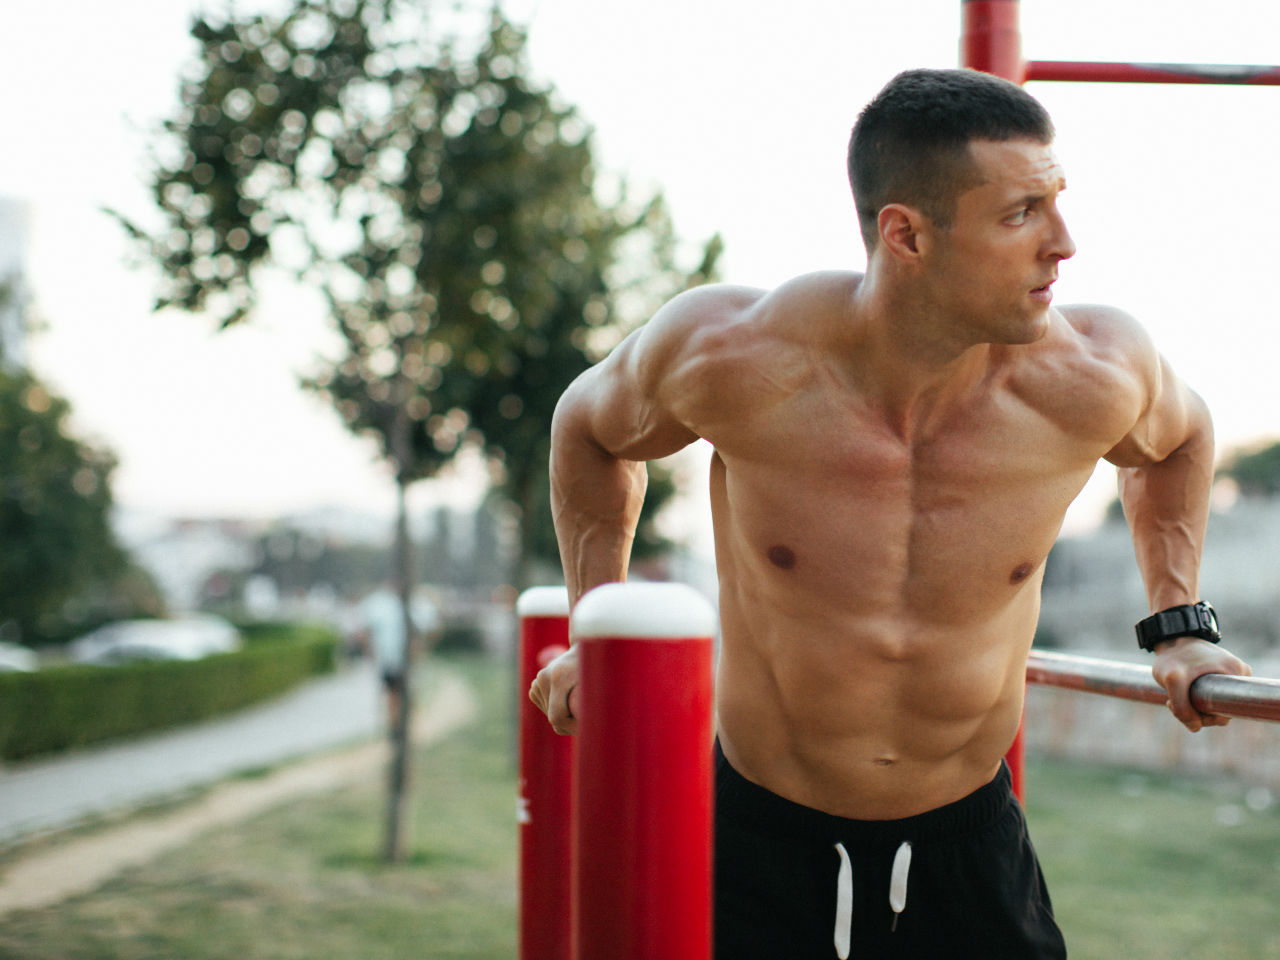 How to pump pectoral muscles: useful tips for beginners 95